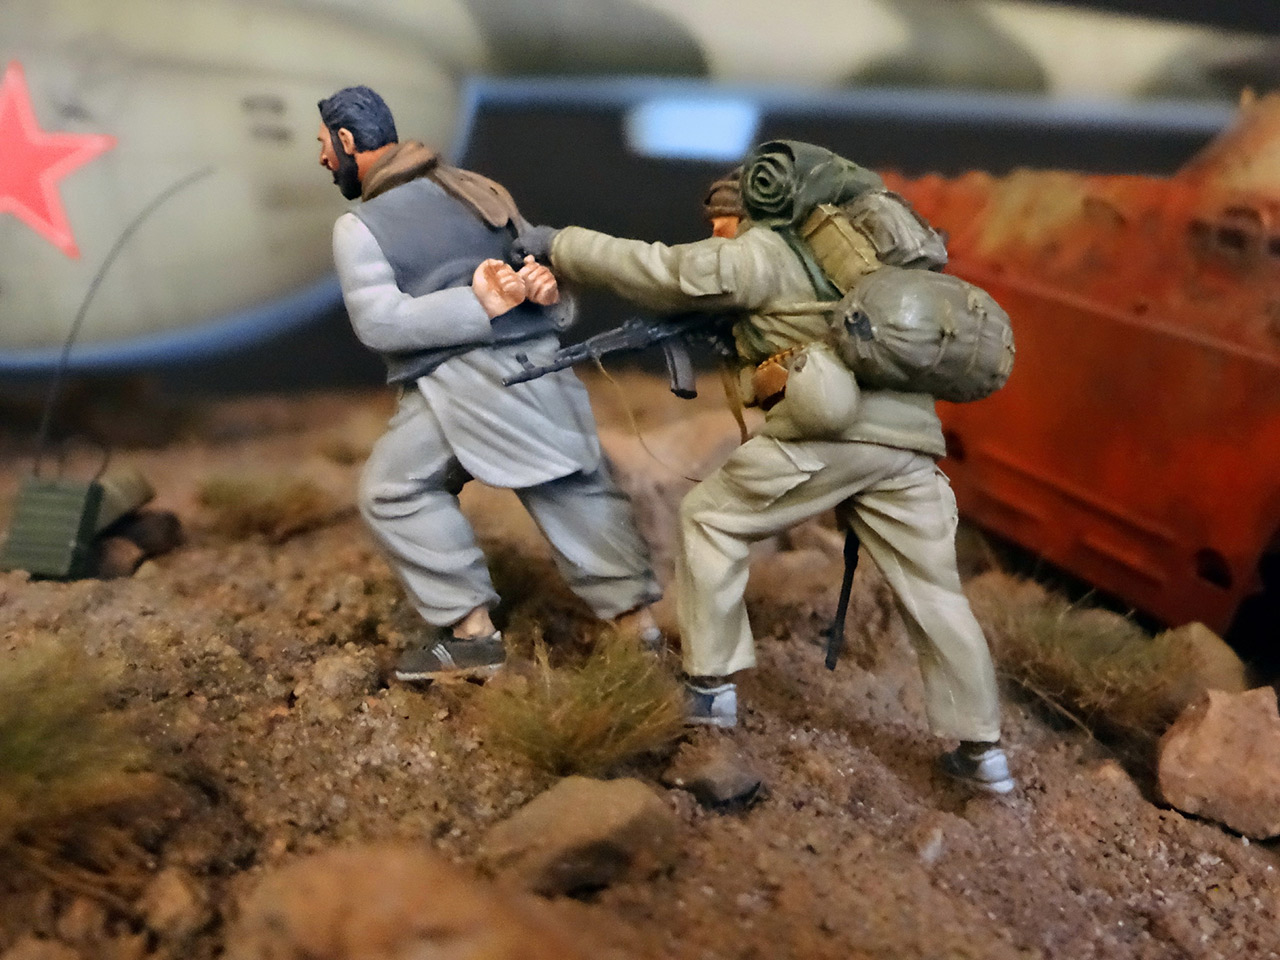 Dioramas and Vignettes: GRU special forces in Afghanistan, photo #23